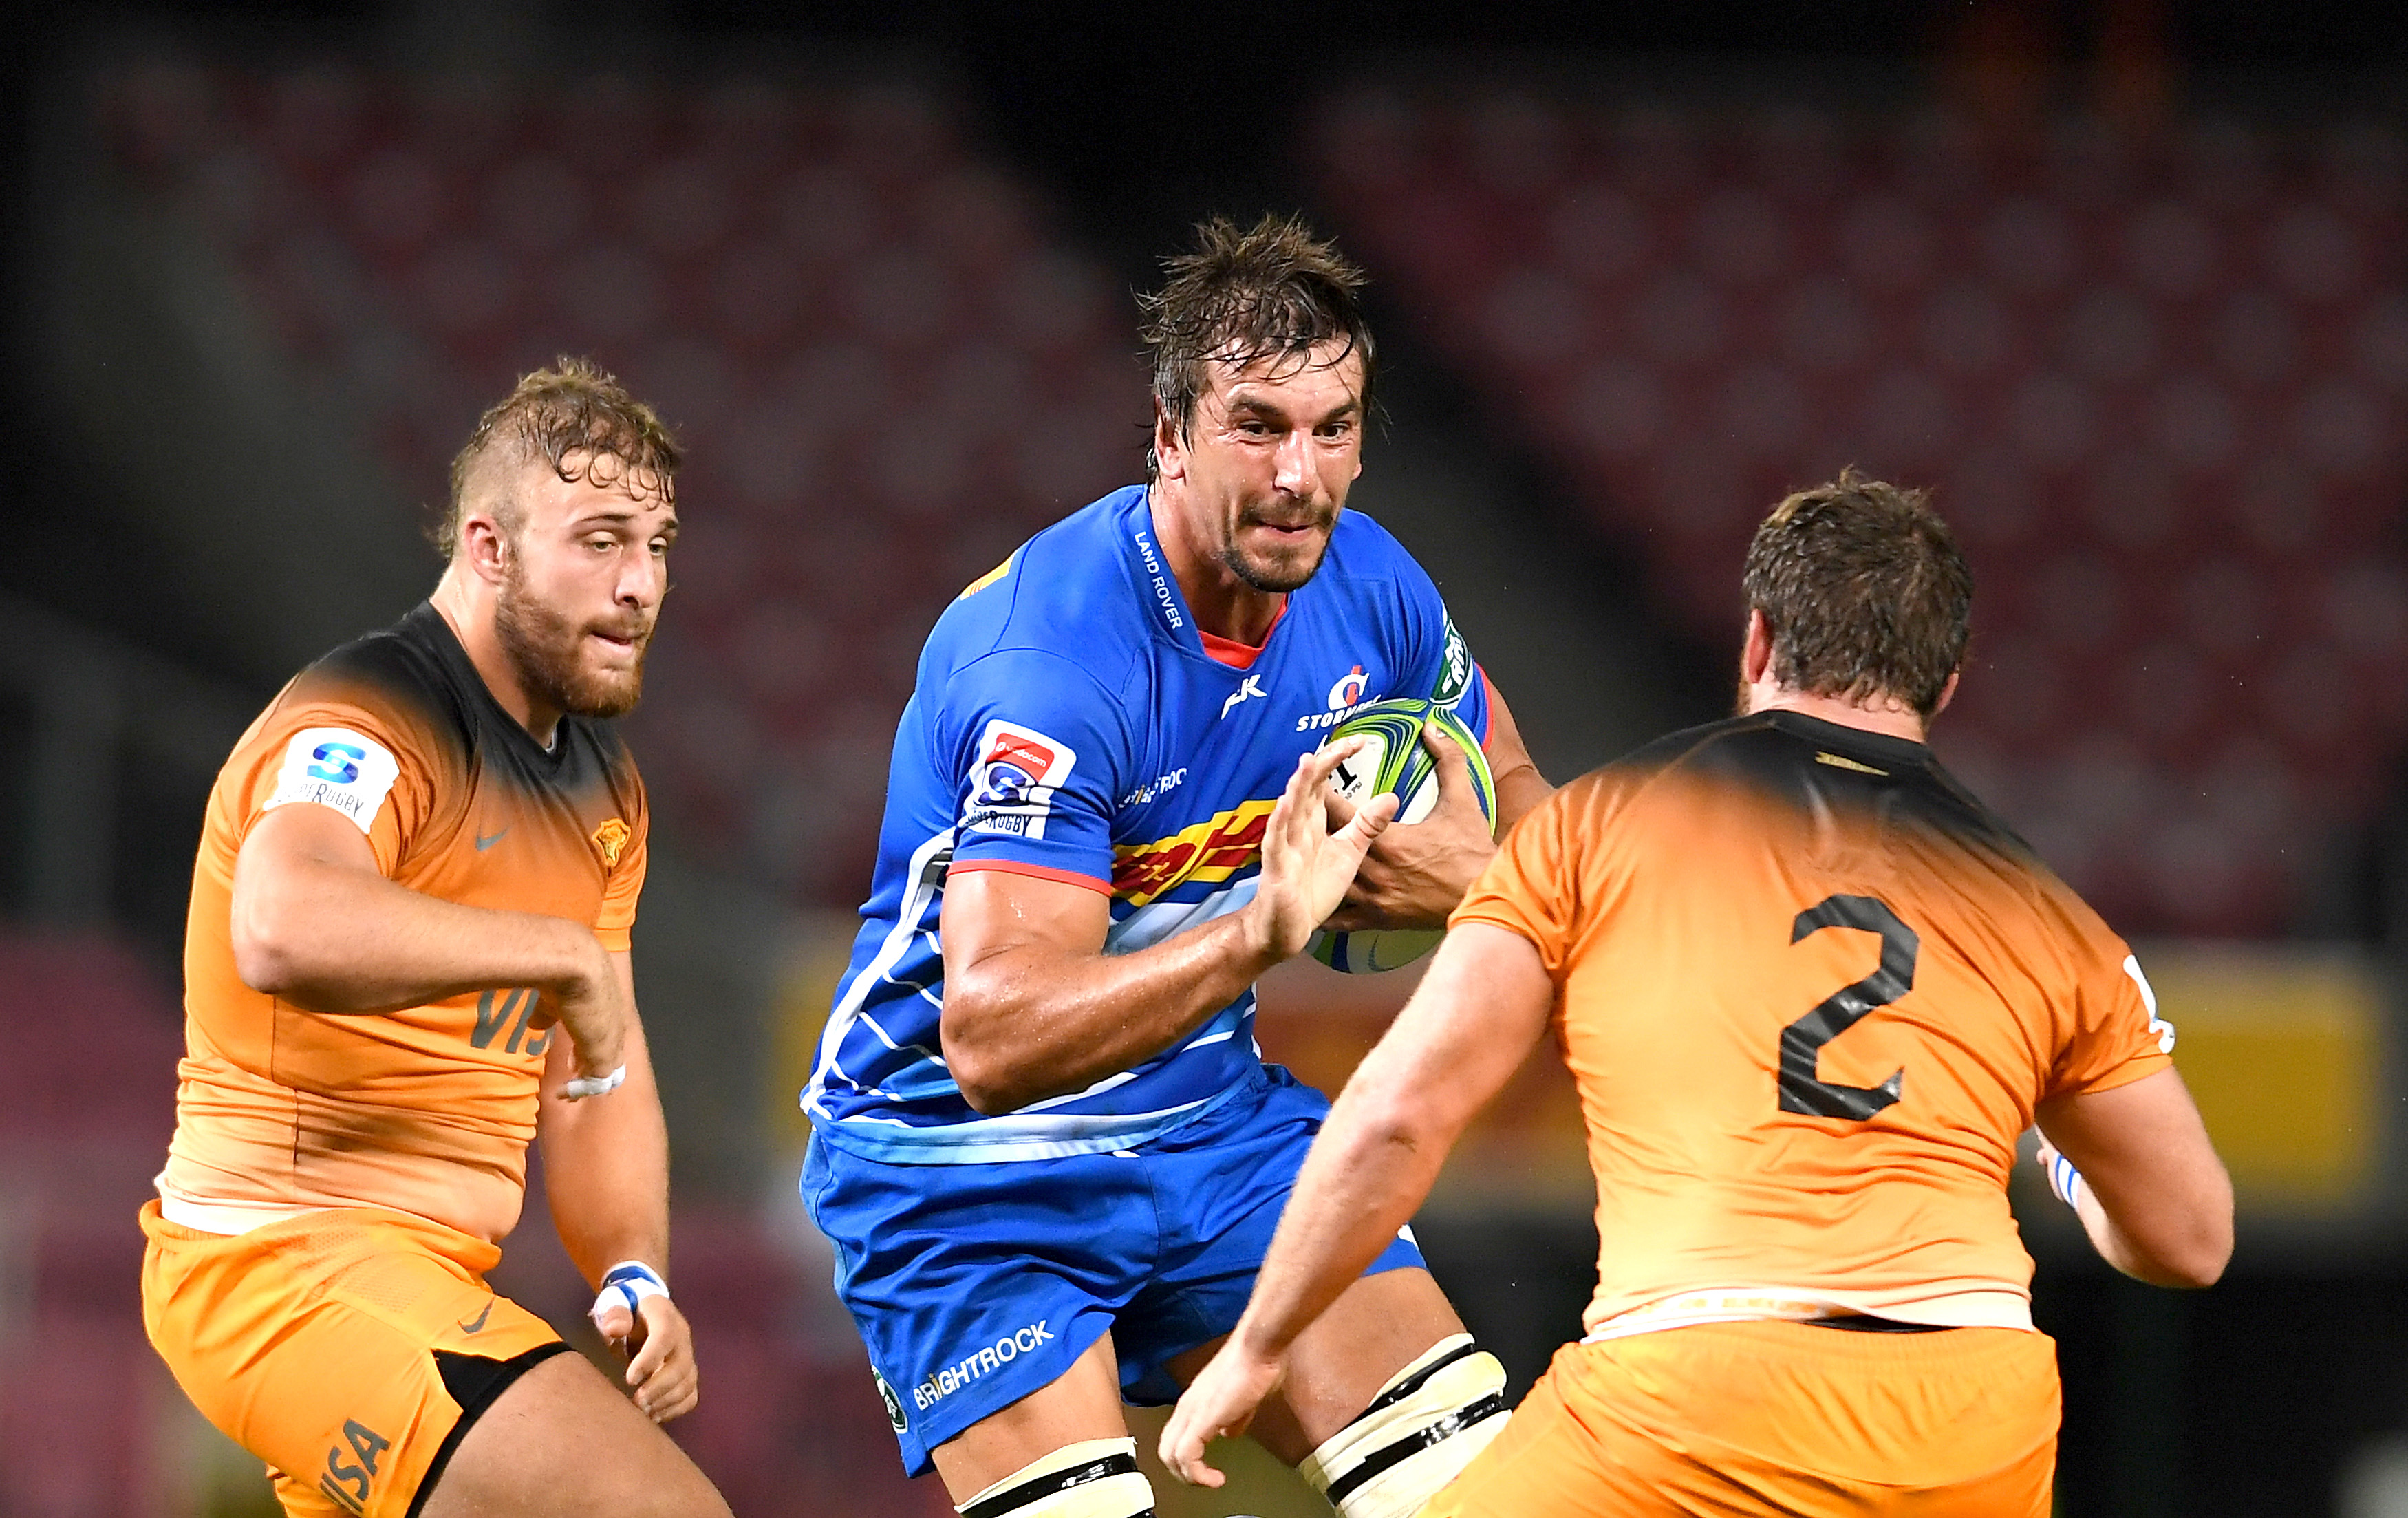 Betting odds sharks stormers cs go betting loss of a loved